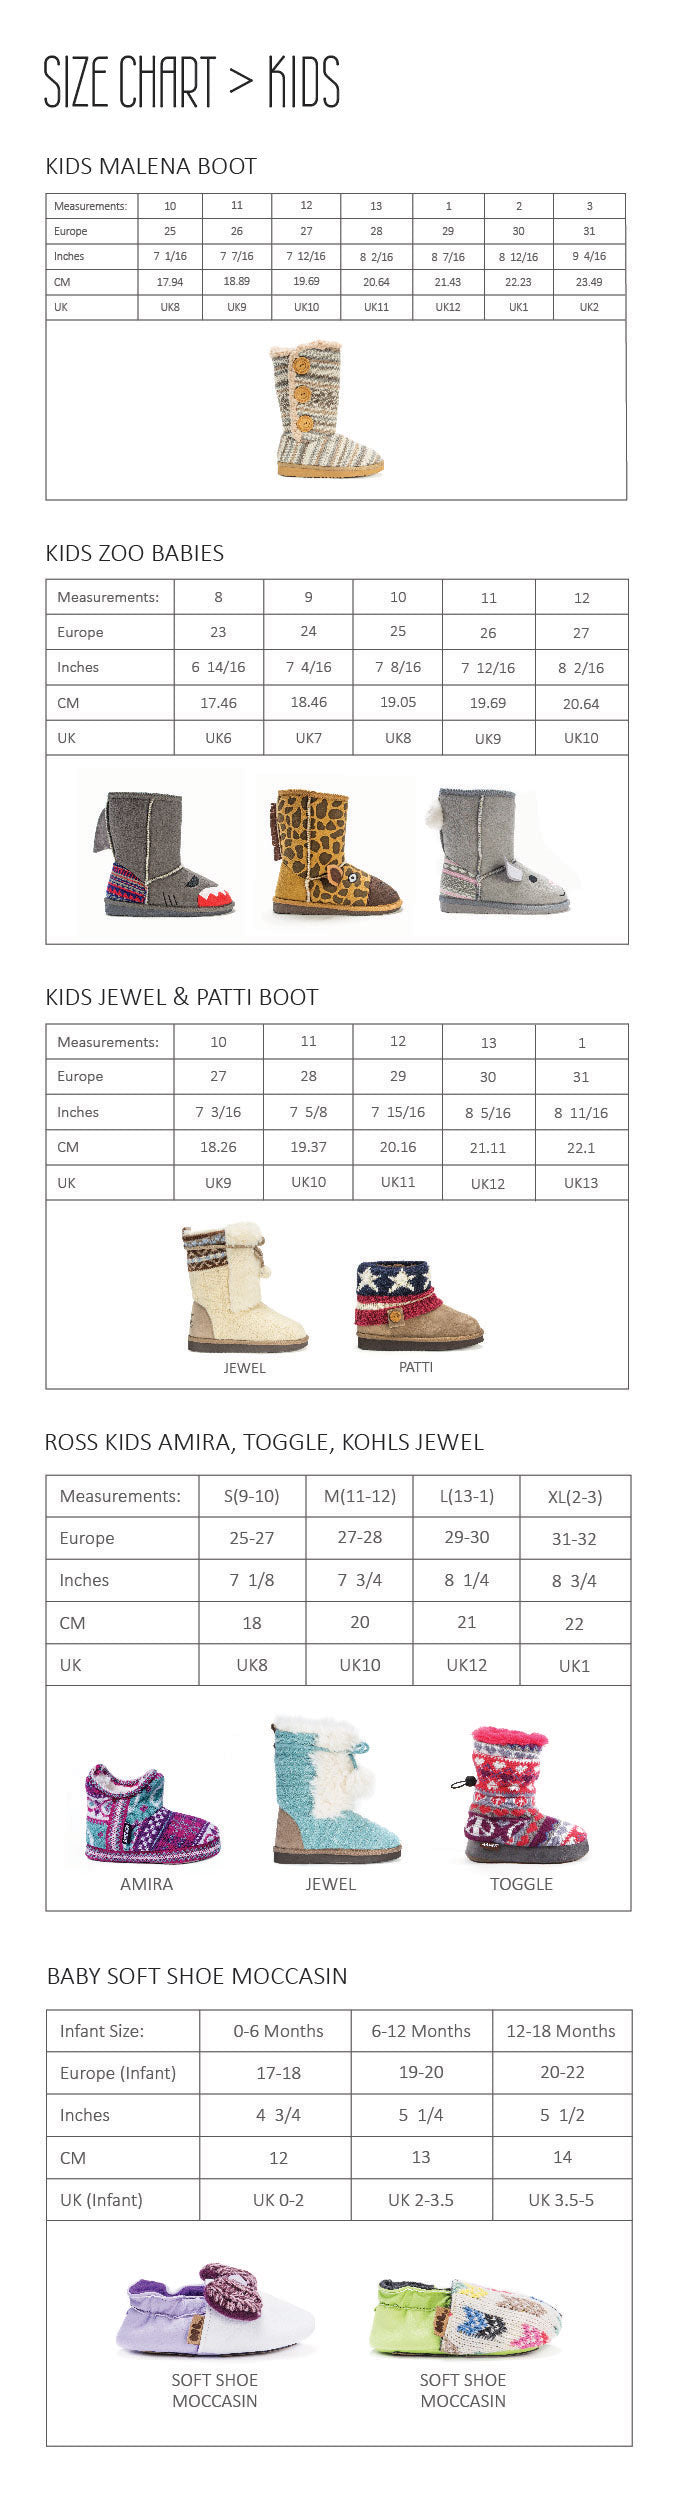 Kids size chart mobile view